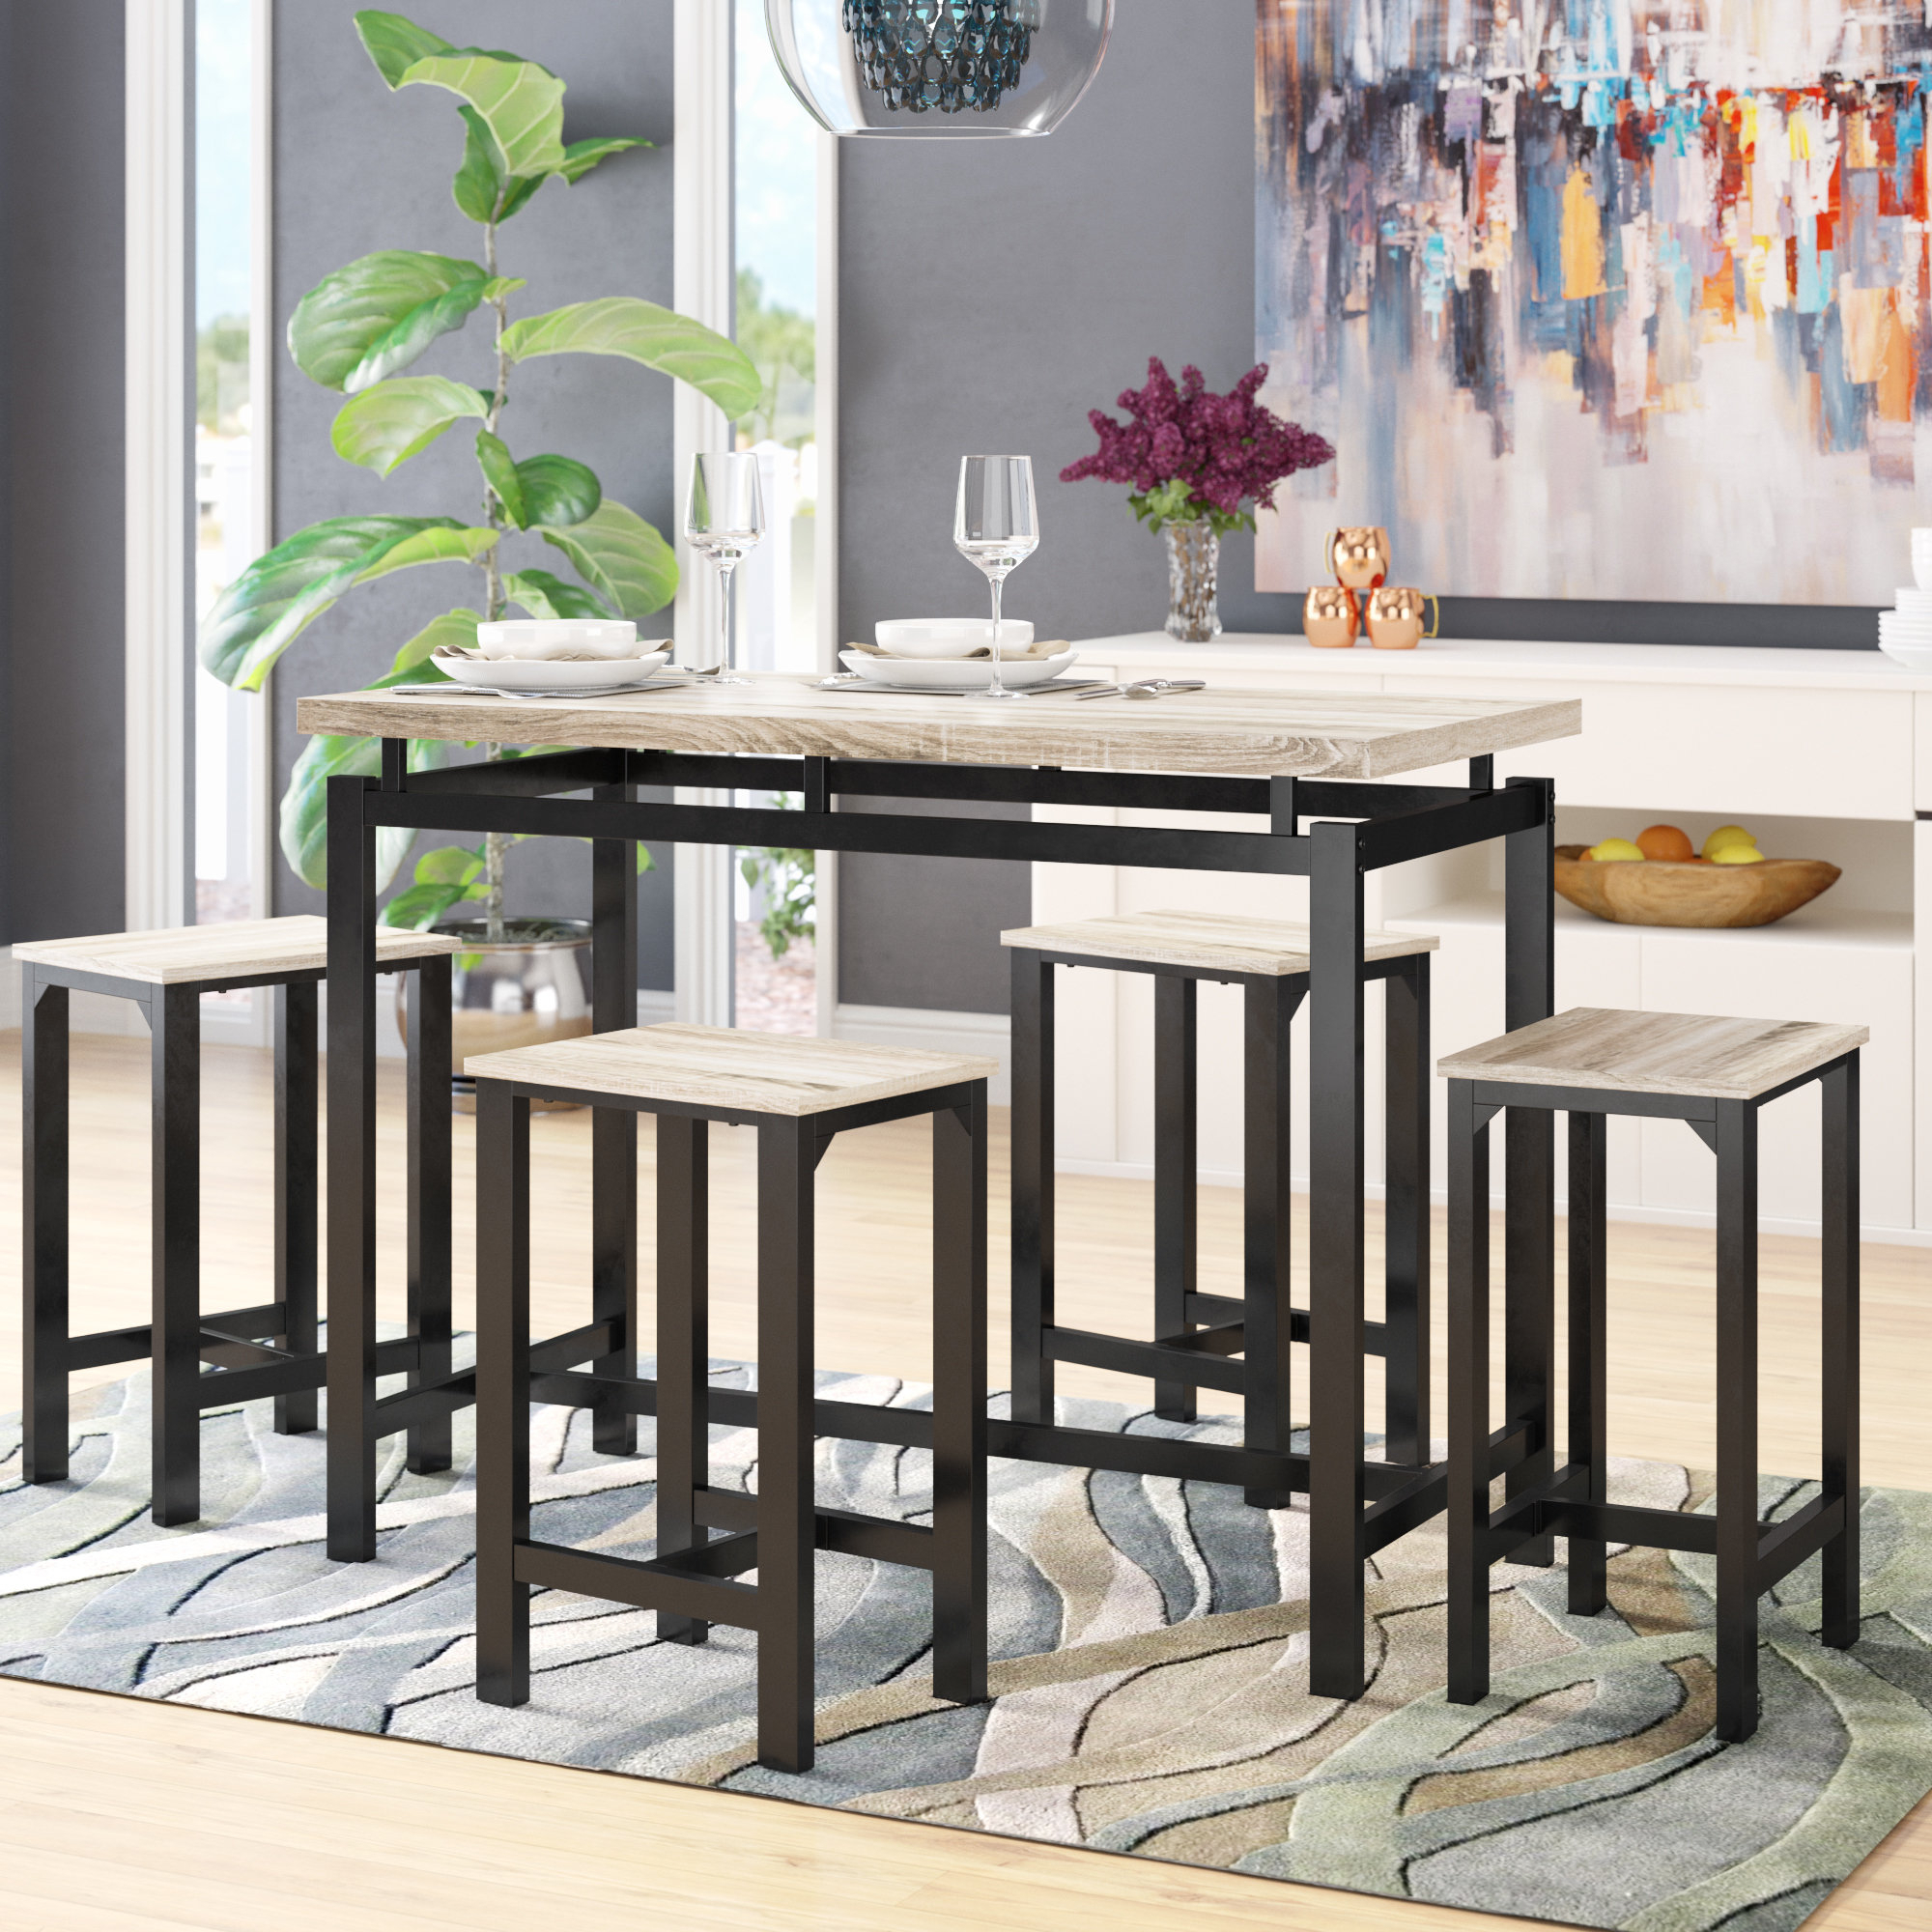 Fashionable Weatherholt Dining Tables With Latitude Run Weatherholt 5 Piece Pub Table Set (View 8 of 20)